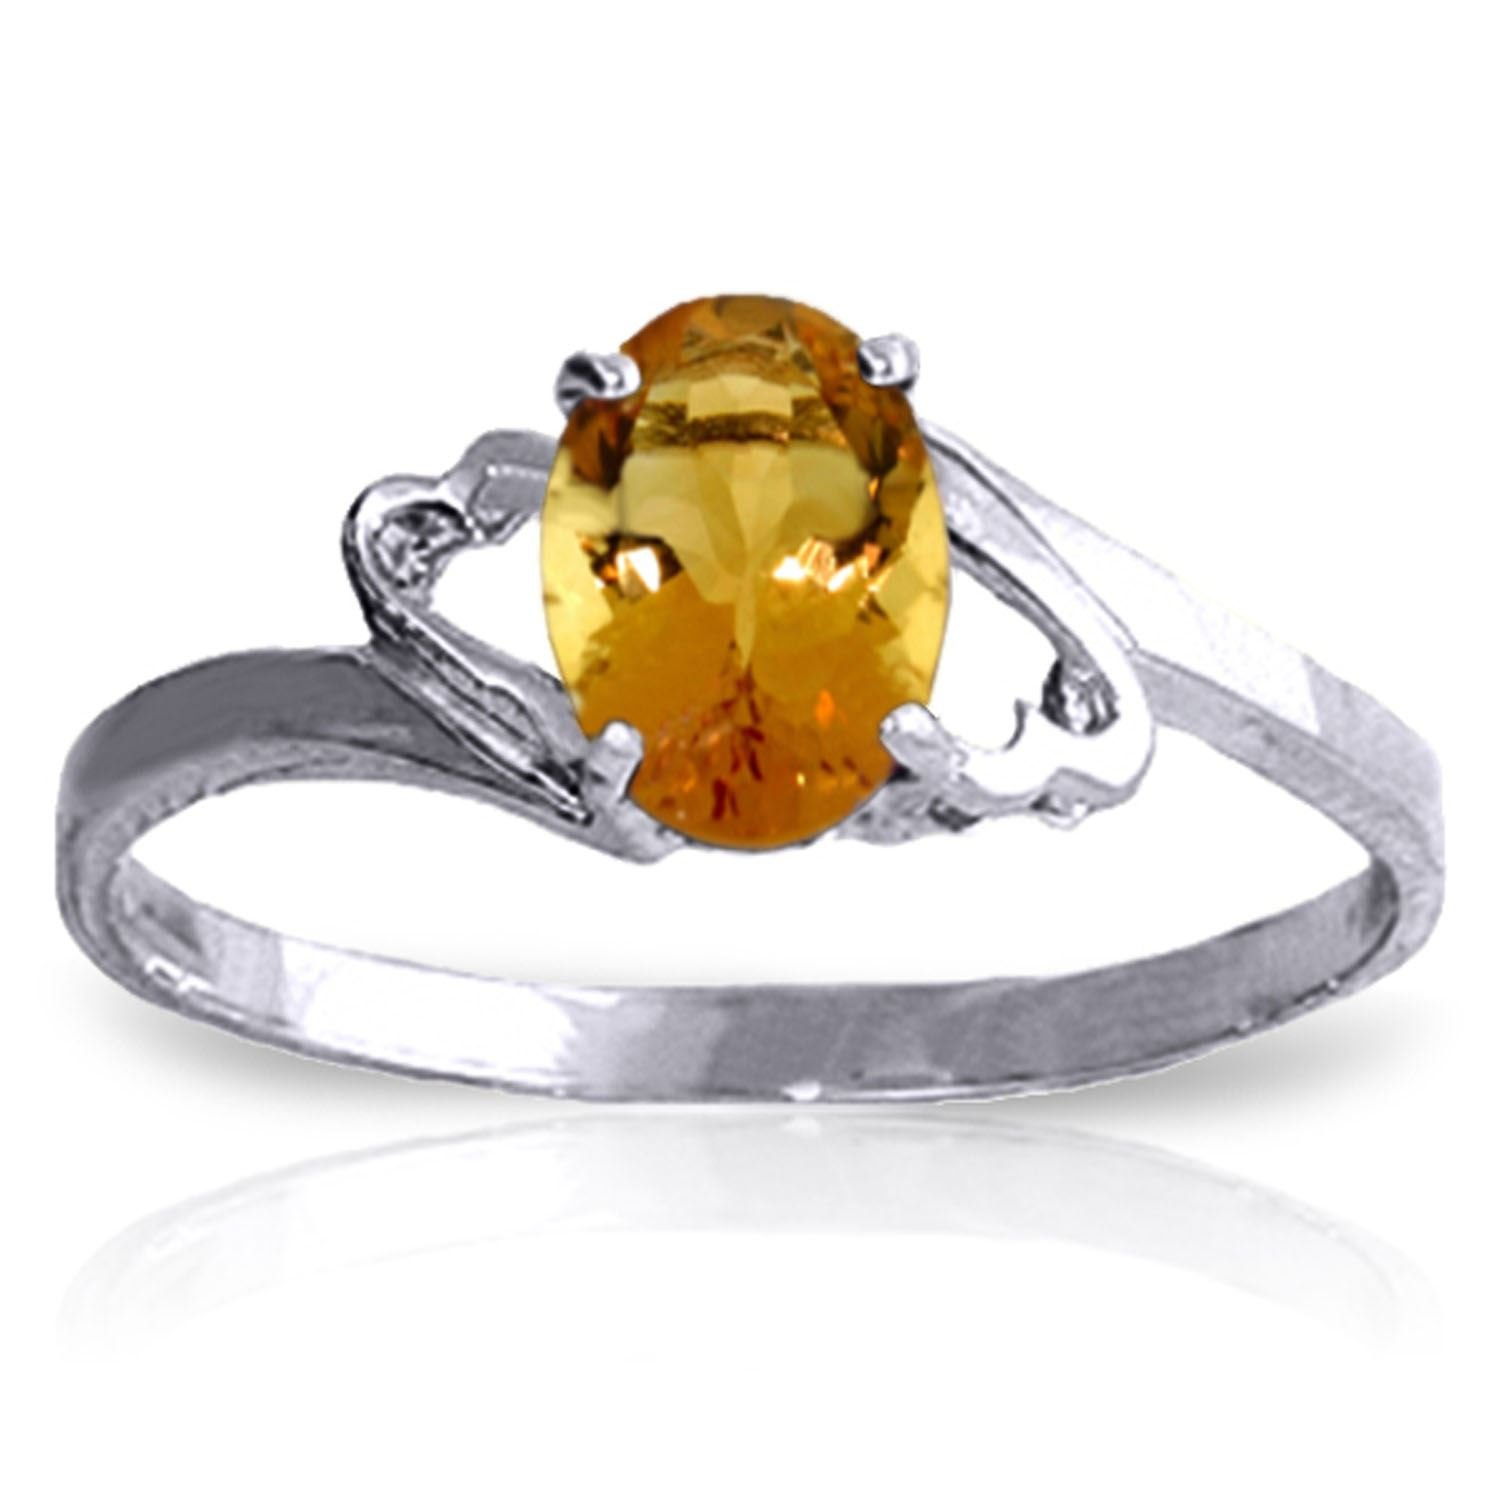 ALARRI 0.9 CTW 14K Solid White Gold My Endless Love Citrine Ring With Ring Size 6.5